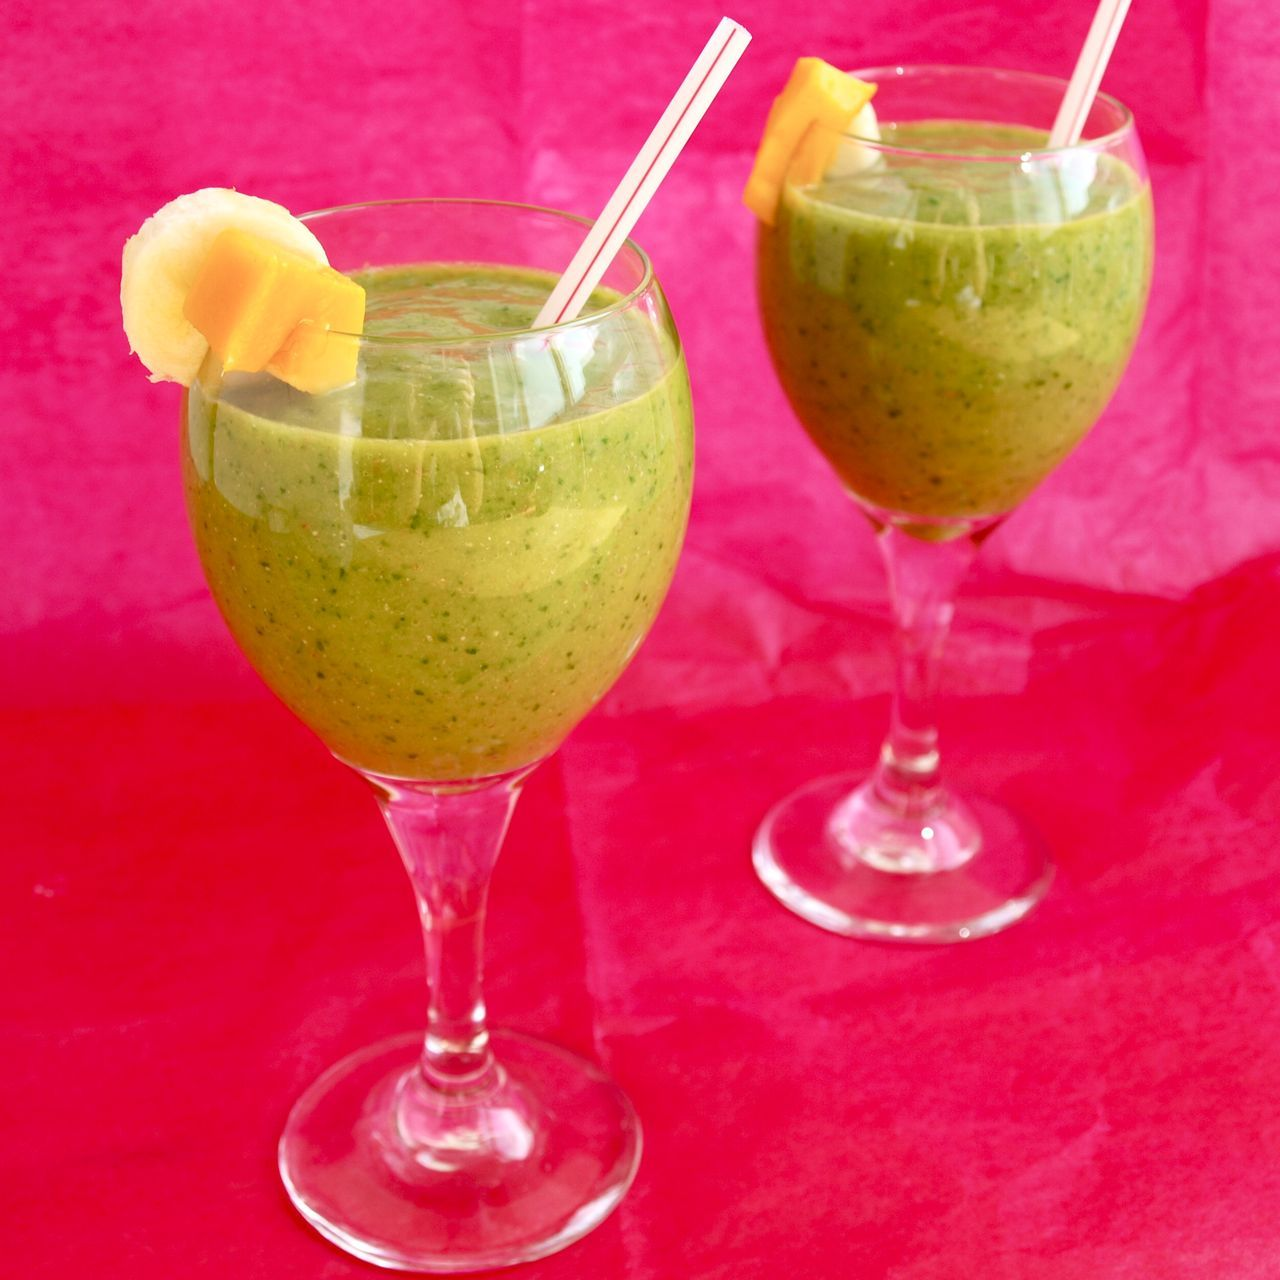 The green smoothie that doesn't taste green